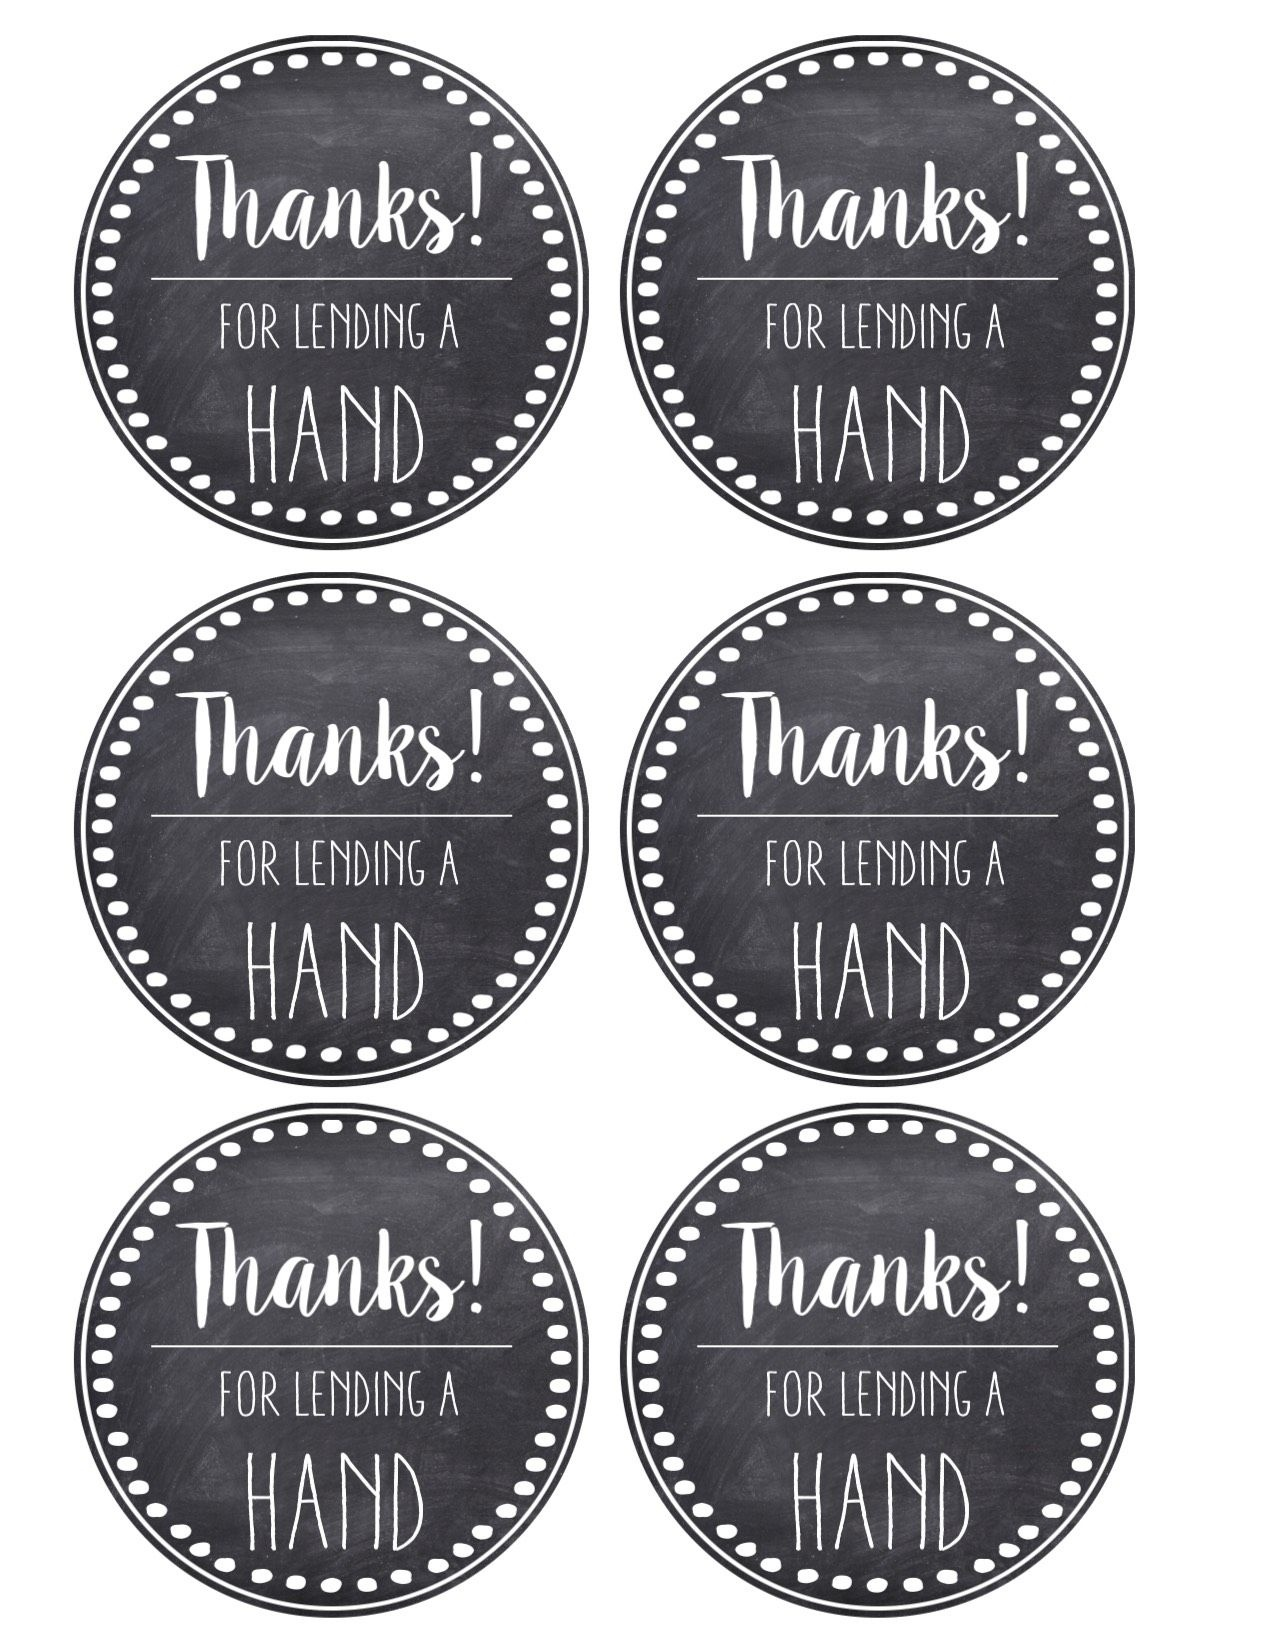 Thank You & Teacher Appreciation Tags Free Printable | Products I - Free Printable Volunteer Thank You Cards